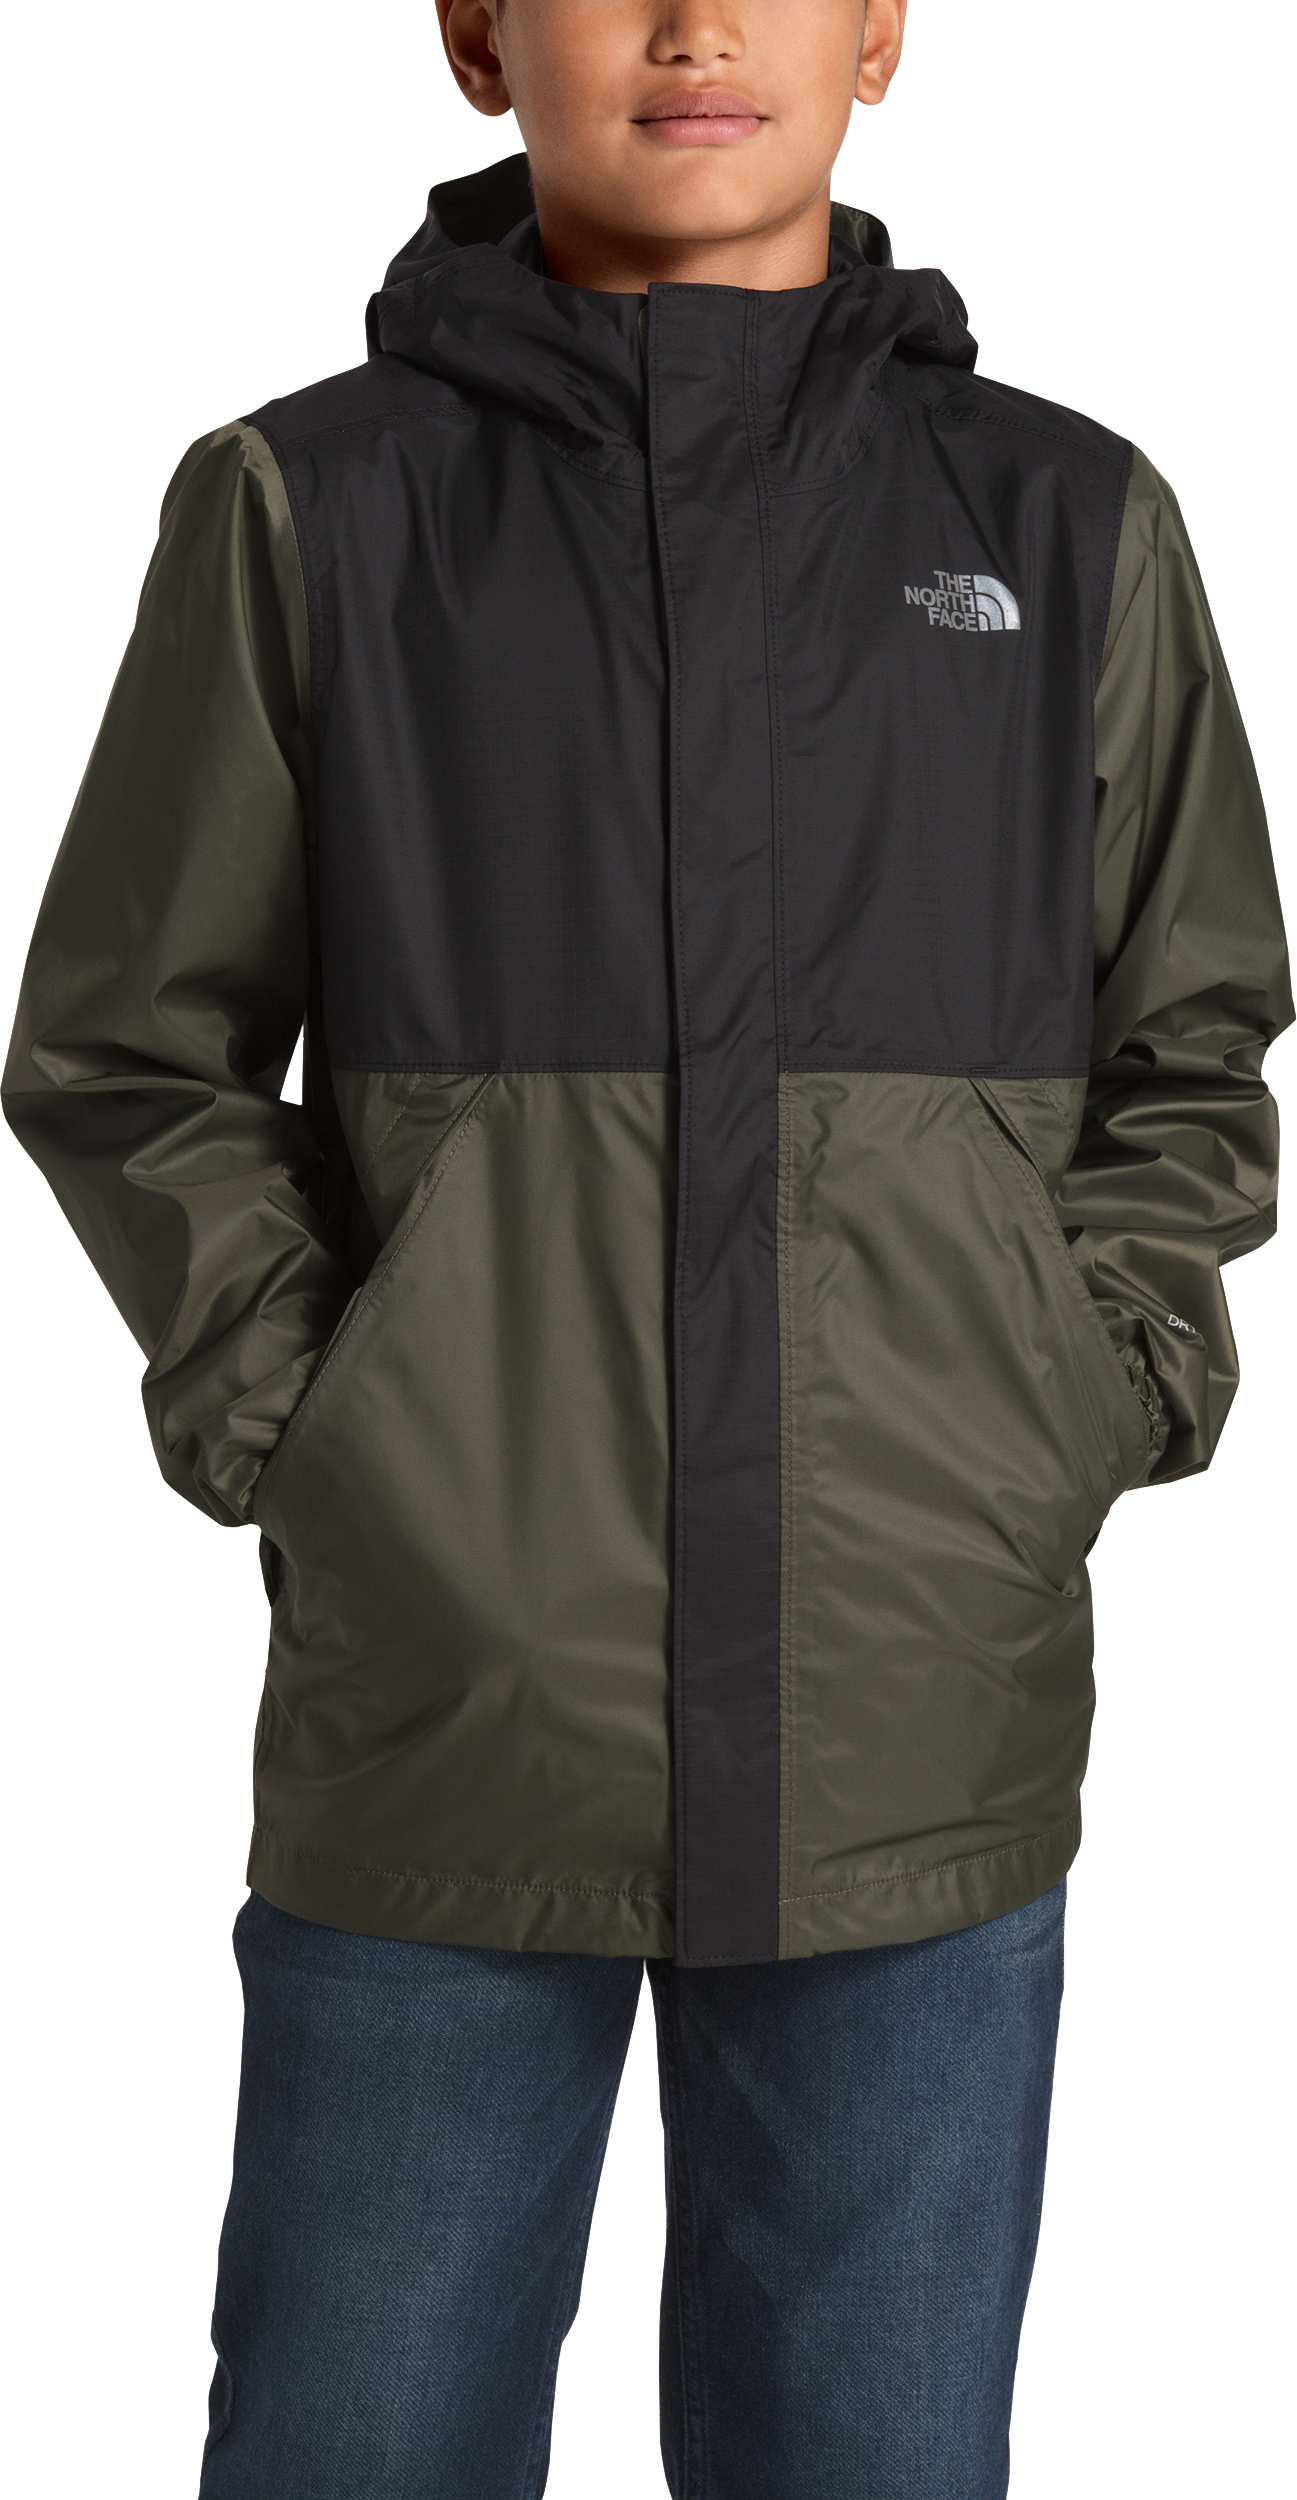 e7c3450d4 The North Face Stormy Rain Triclimate - Boys' - Youths